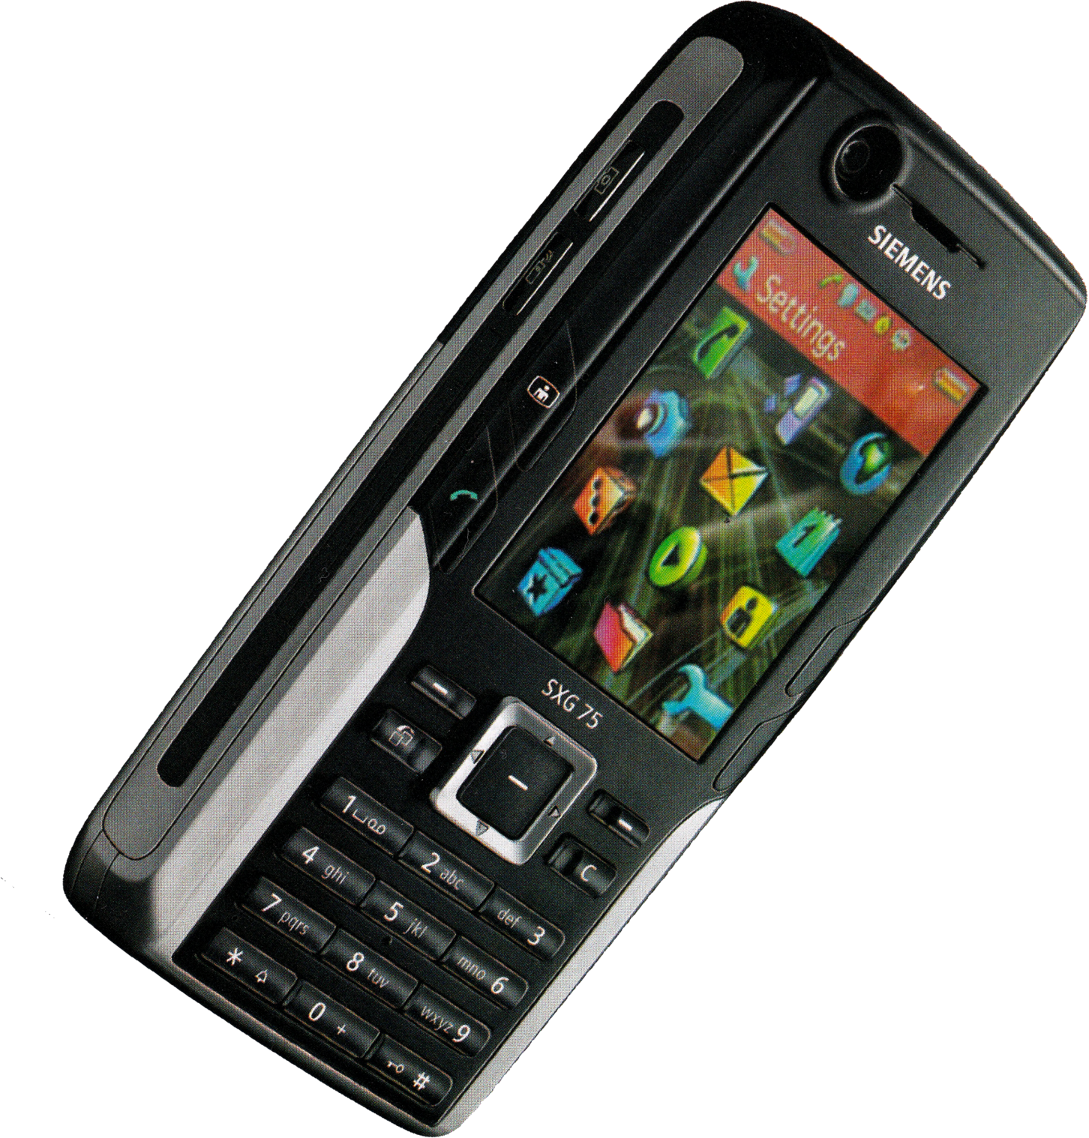 old-mobile-phones-1.png